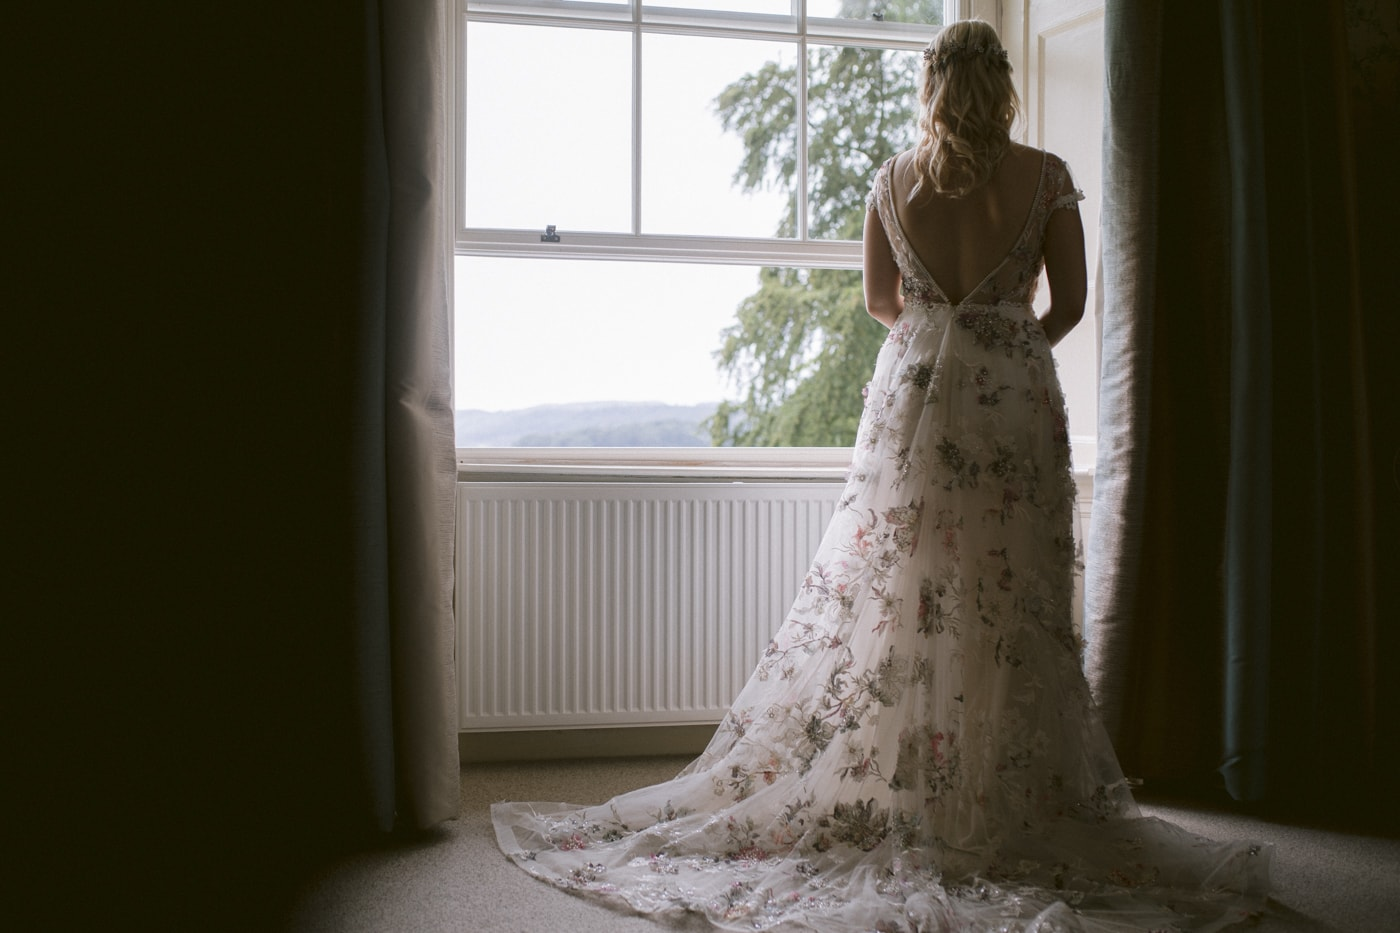 Bride Window Portrait at Storrs Hall Windermere